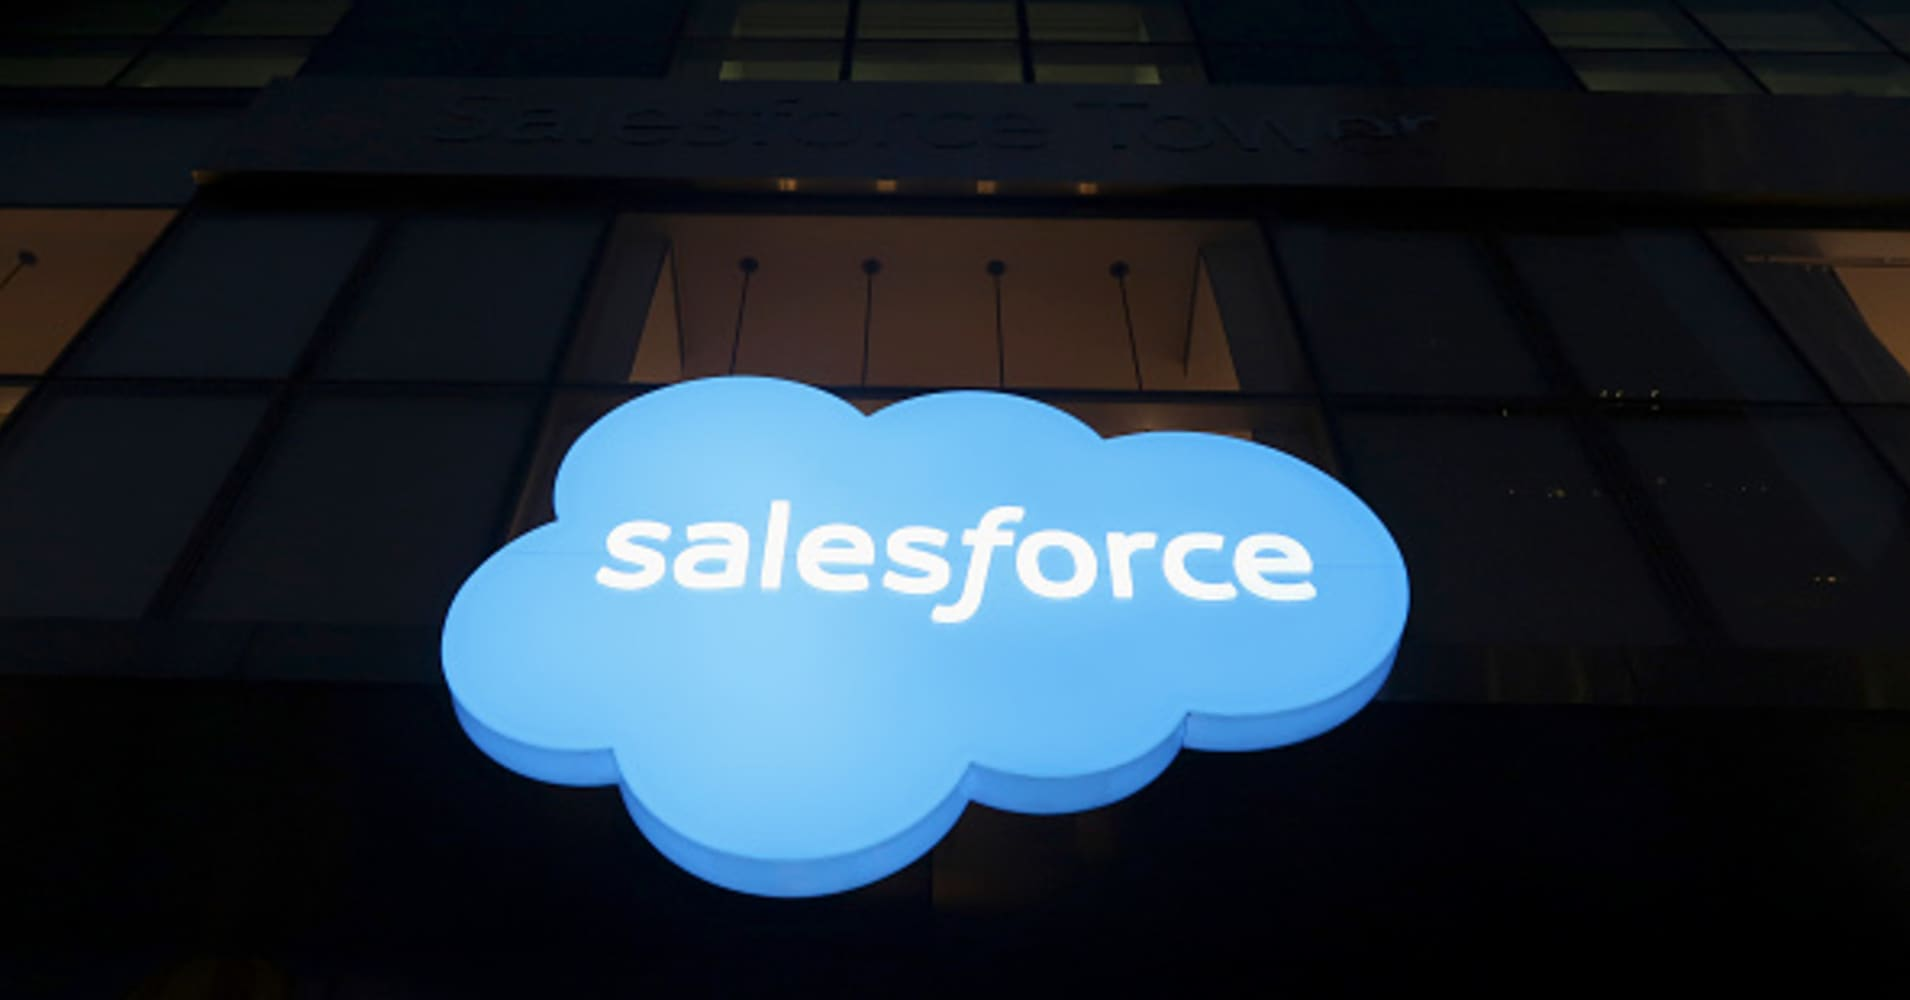 Cloud computing in Europe: Salesforce, Amazon are big winners